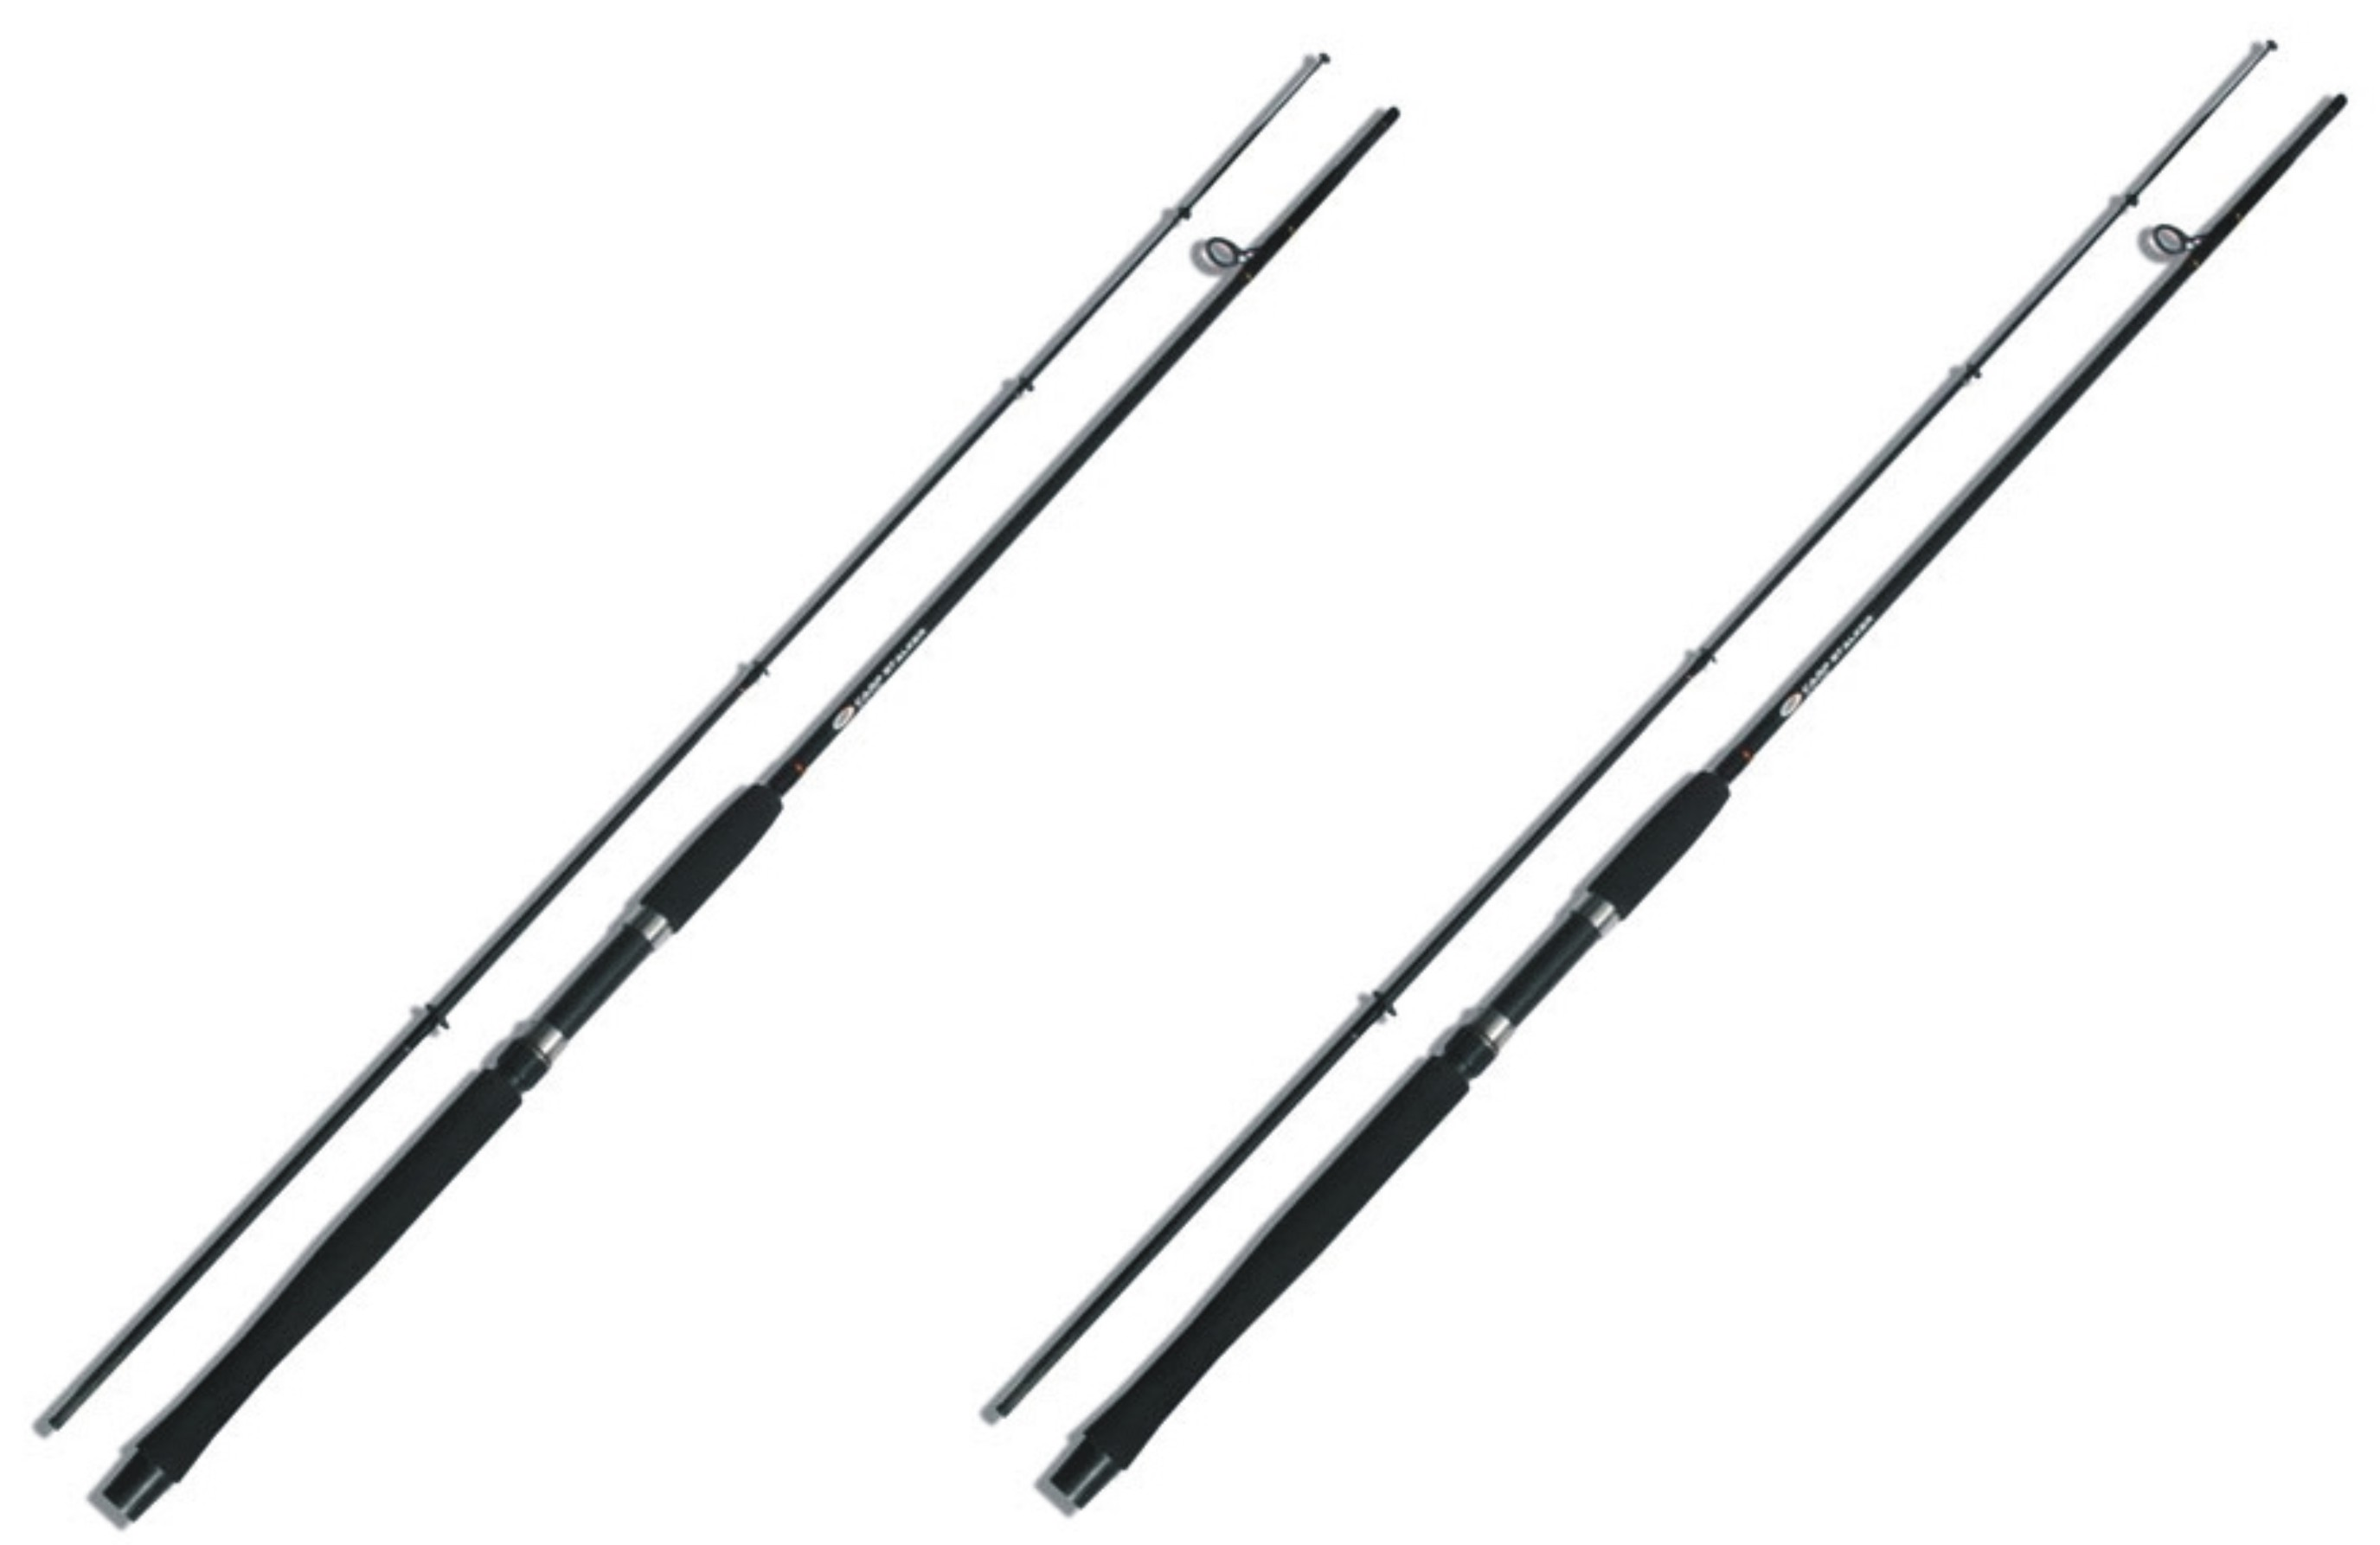 NGT Prut Carp Stalker Rod 8ft/2pc Black 1+1